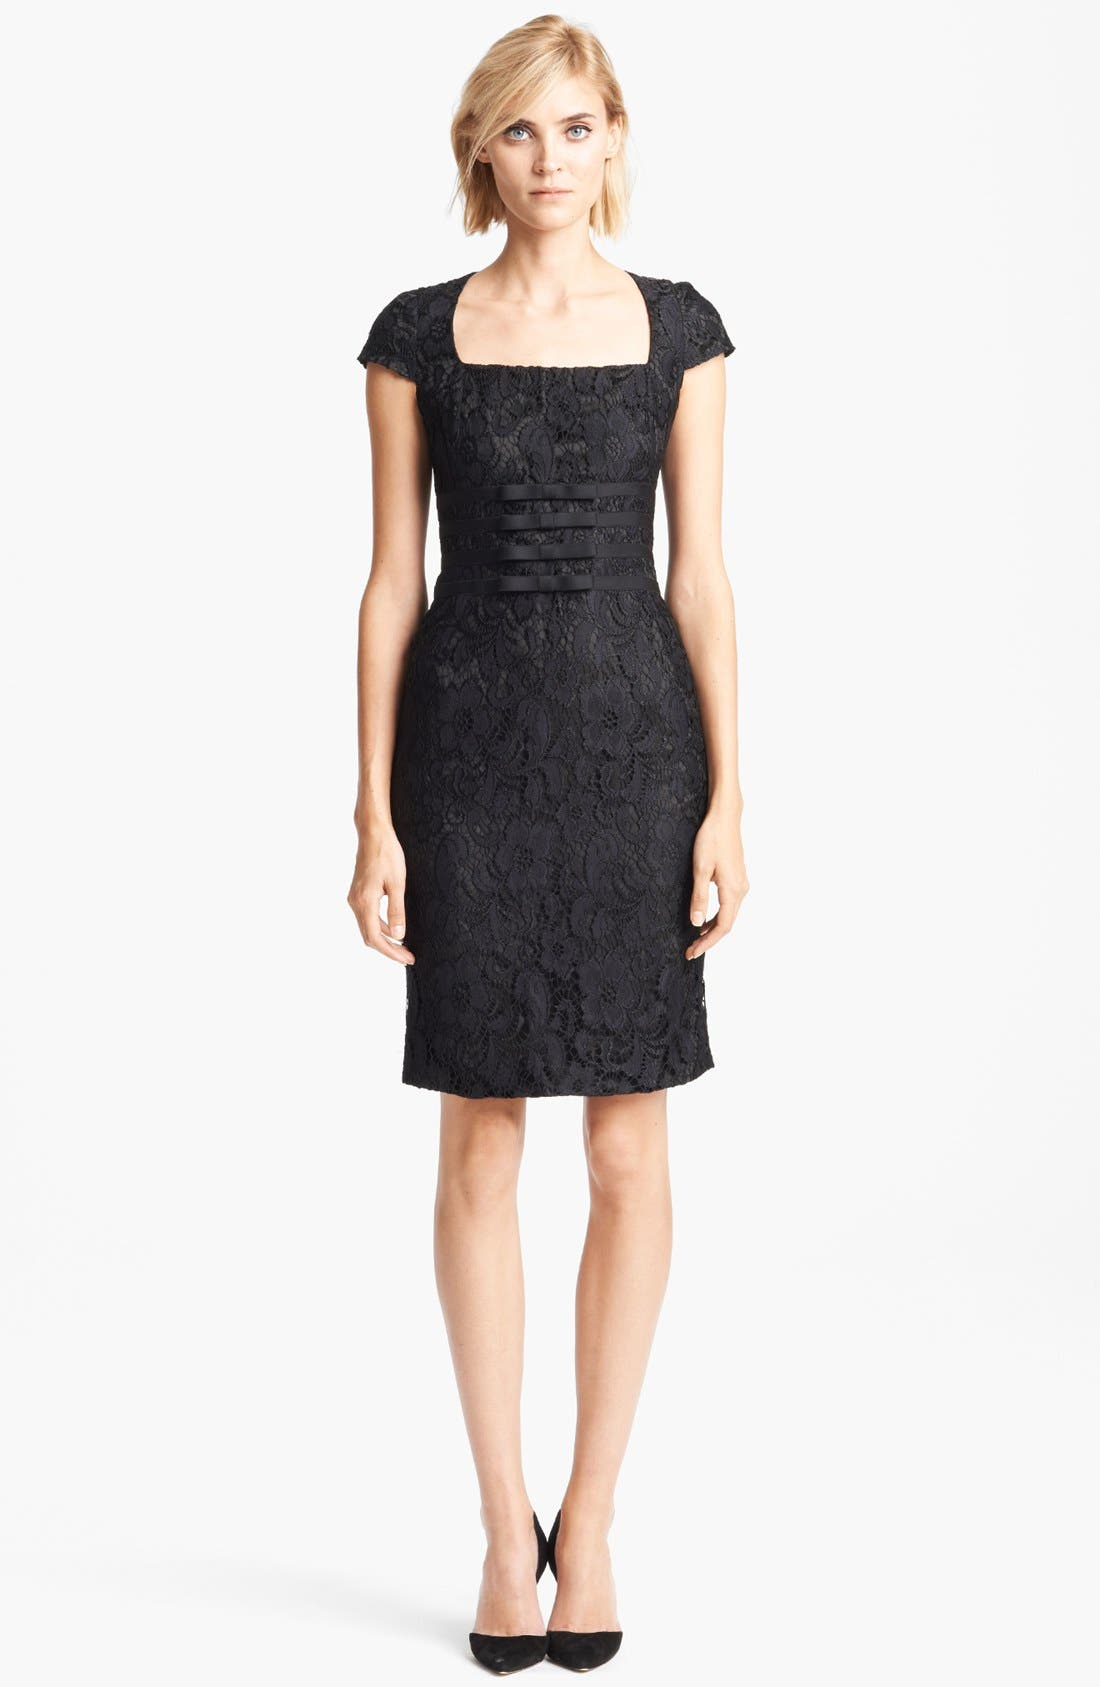 Alternate Image 1 Selected - Moschino Cheap & Chic Bow Detail Lace Dress